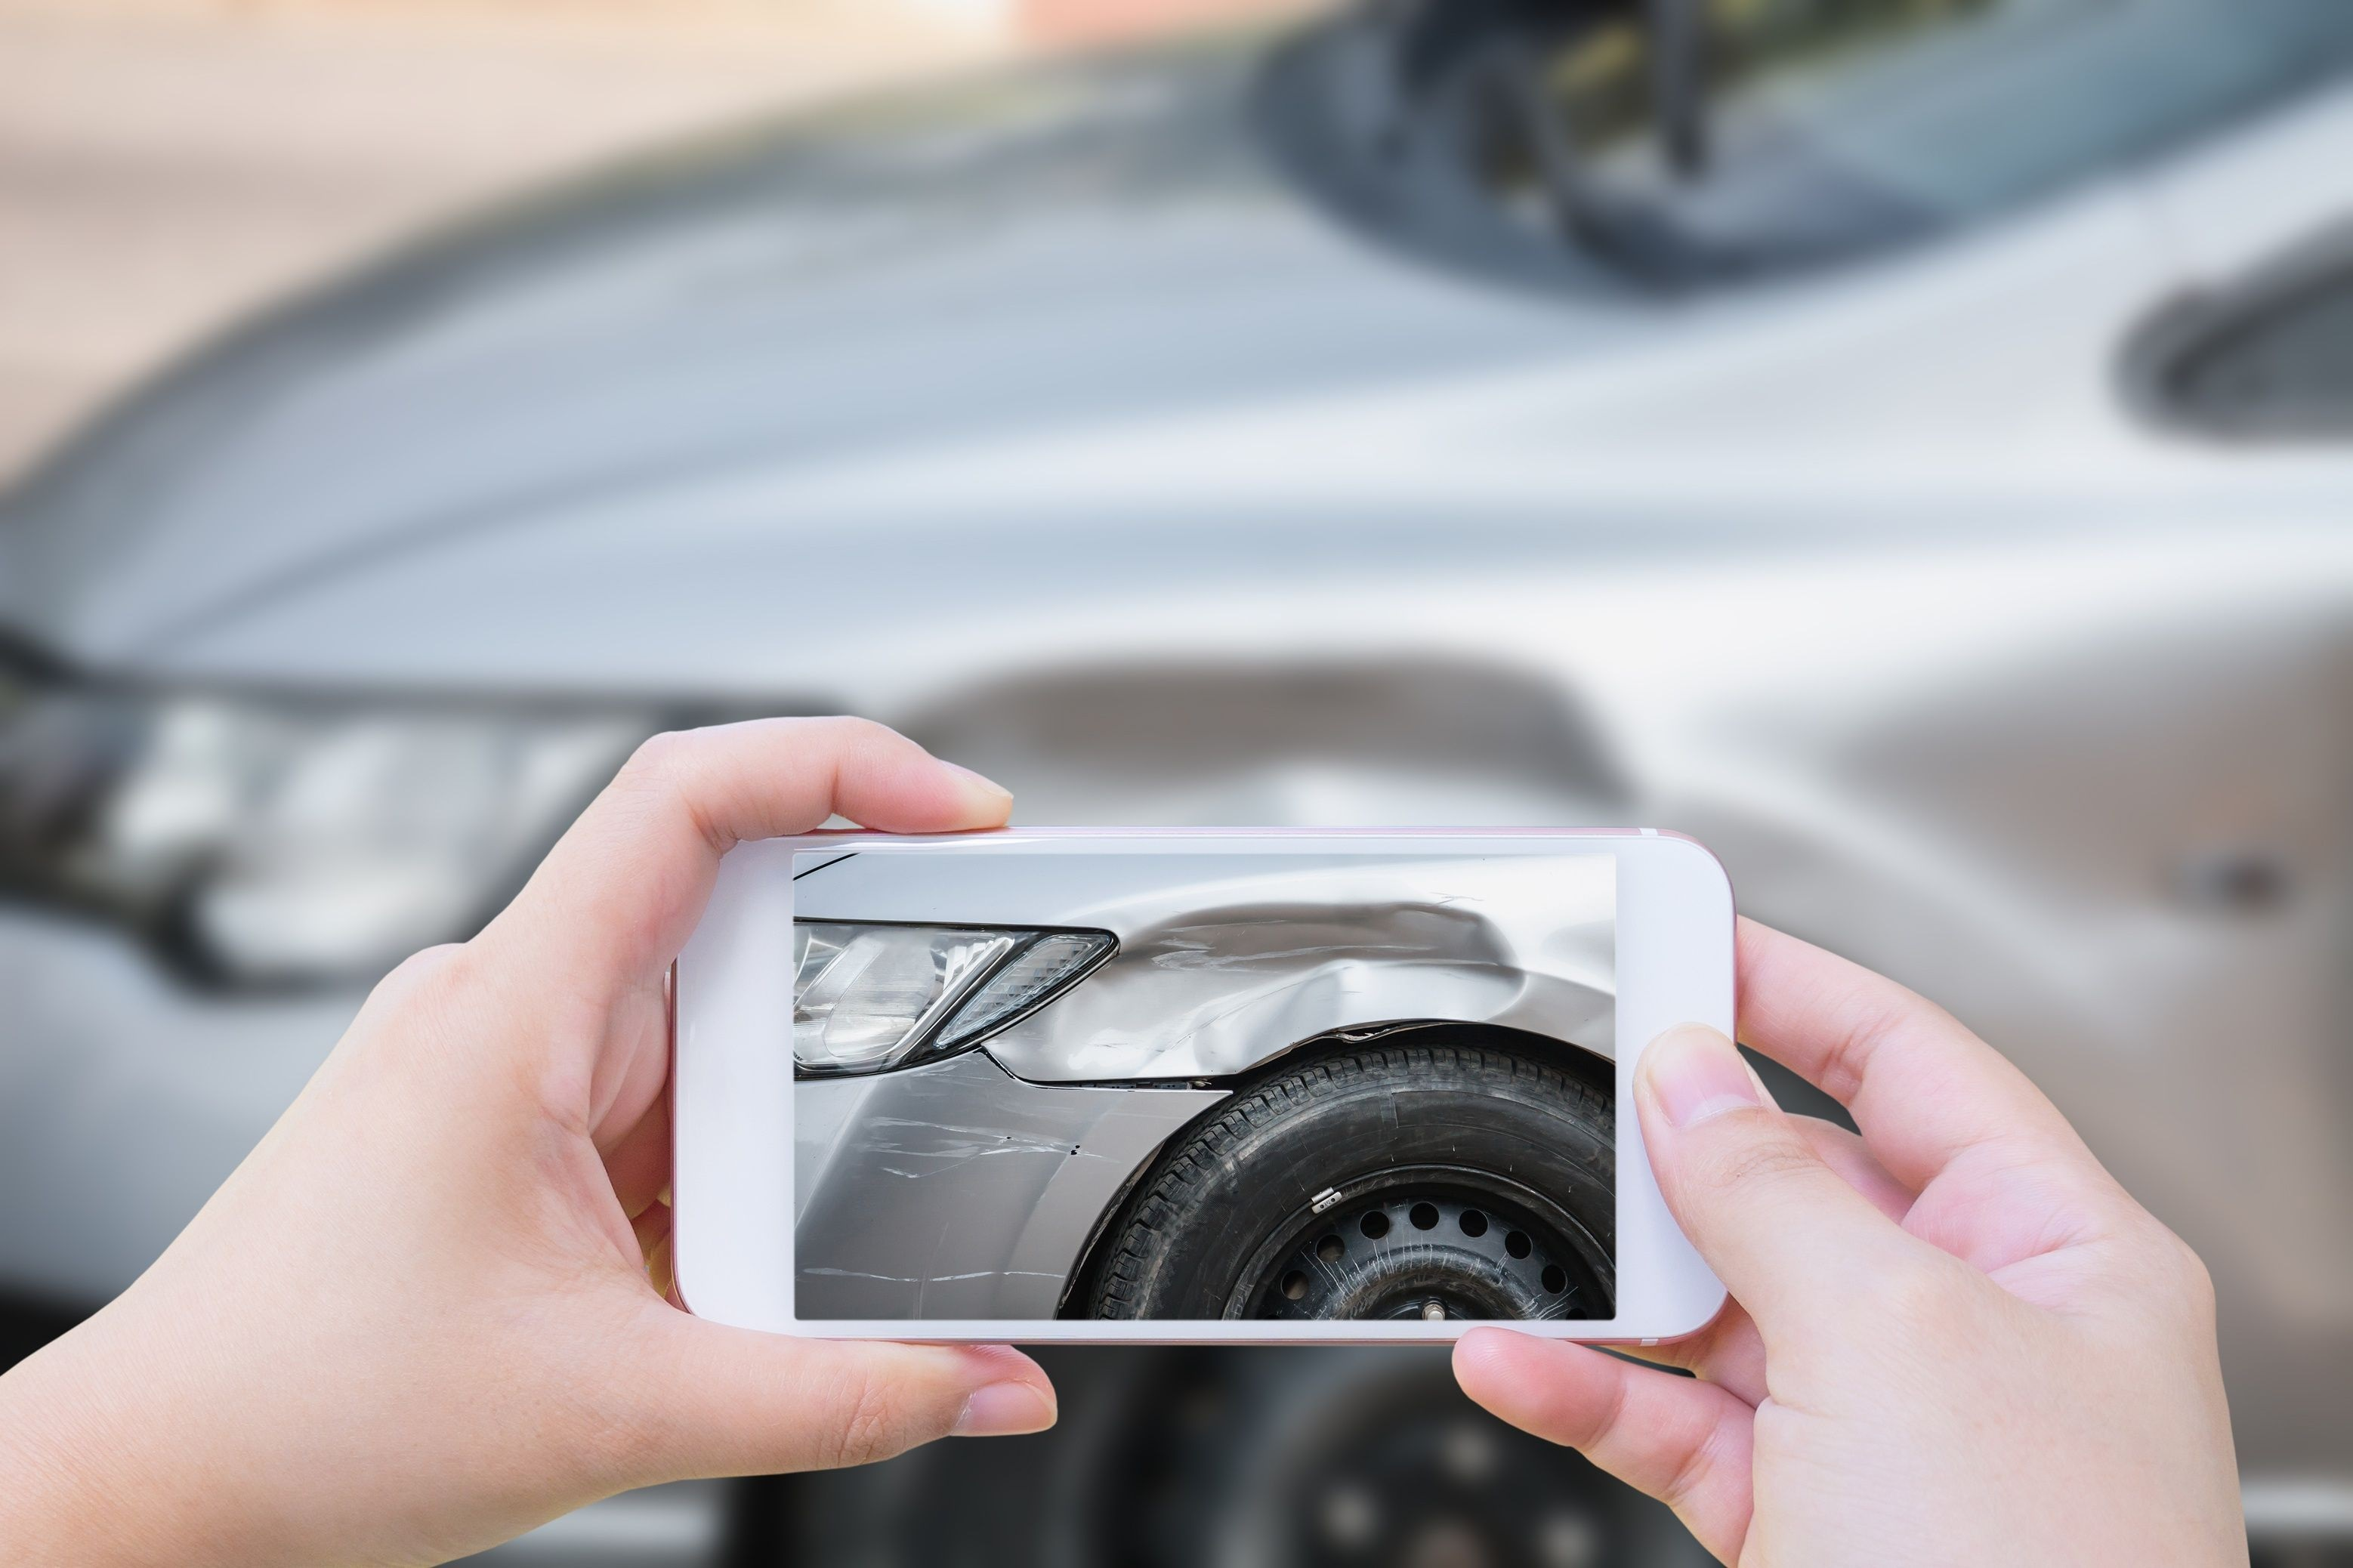 Get Scratch and Dent Repairs by the Experts